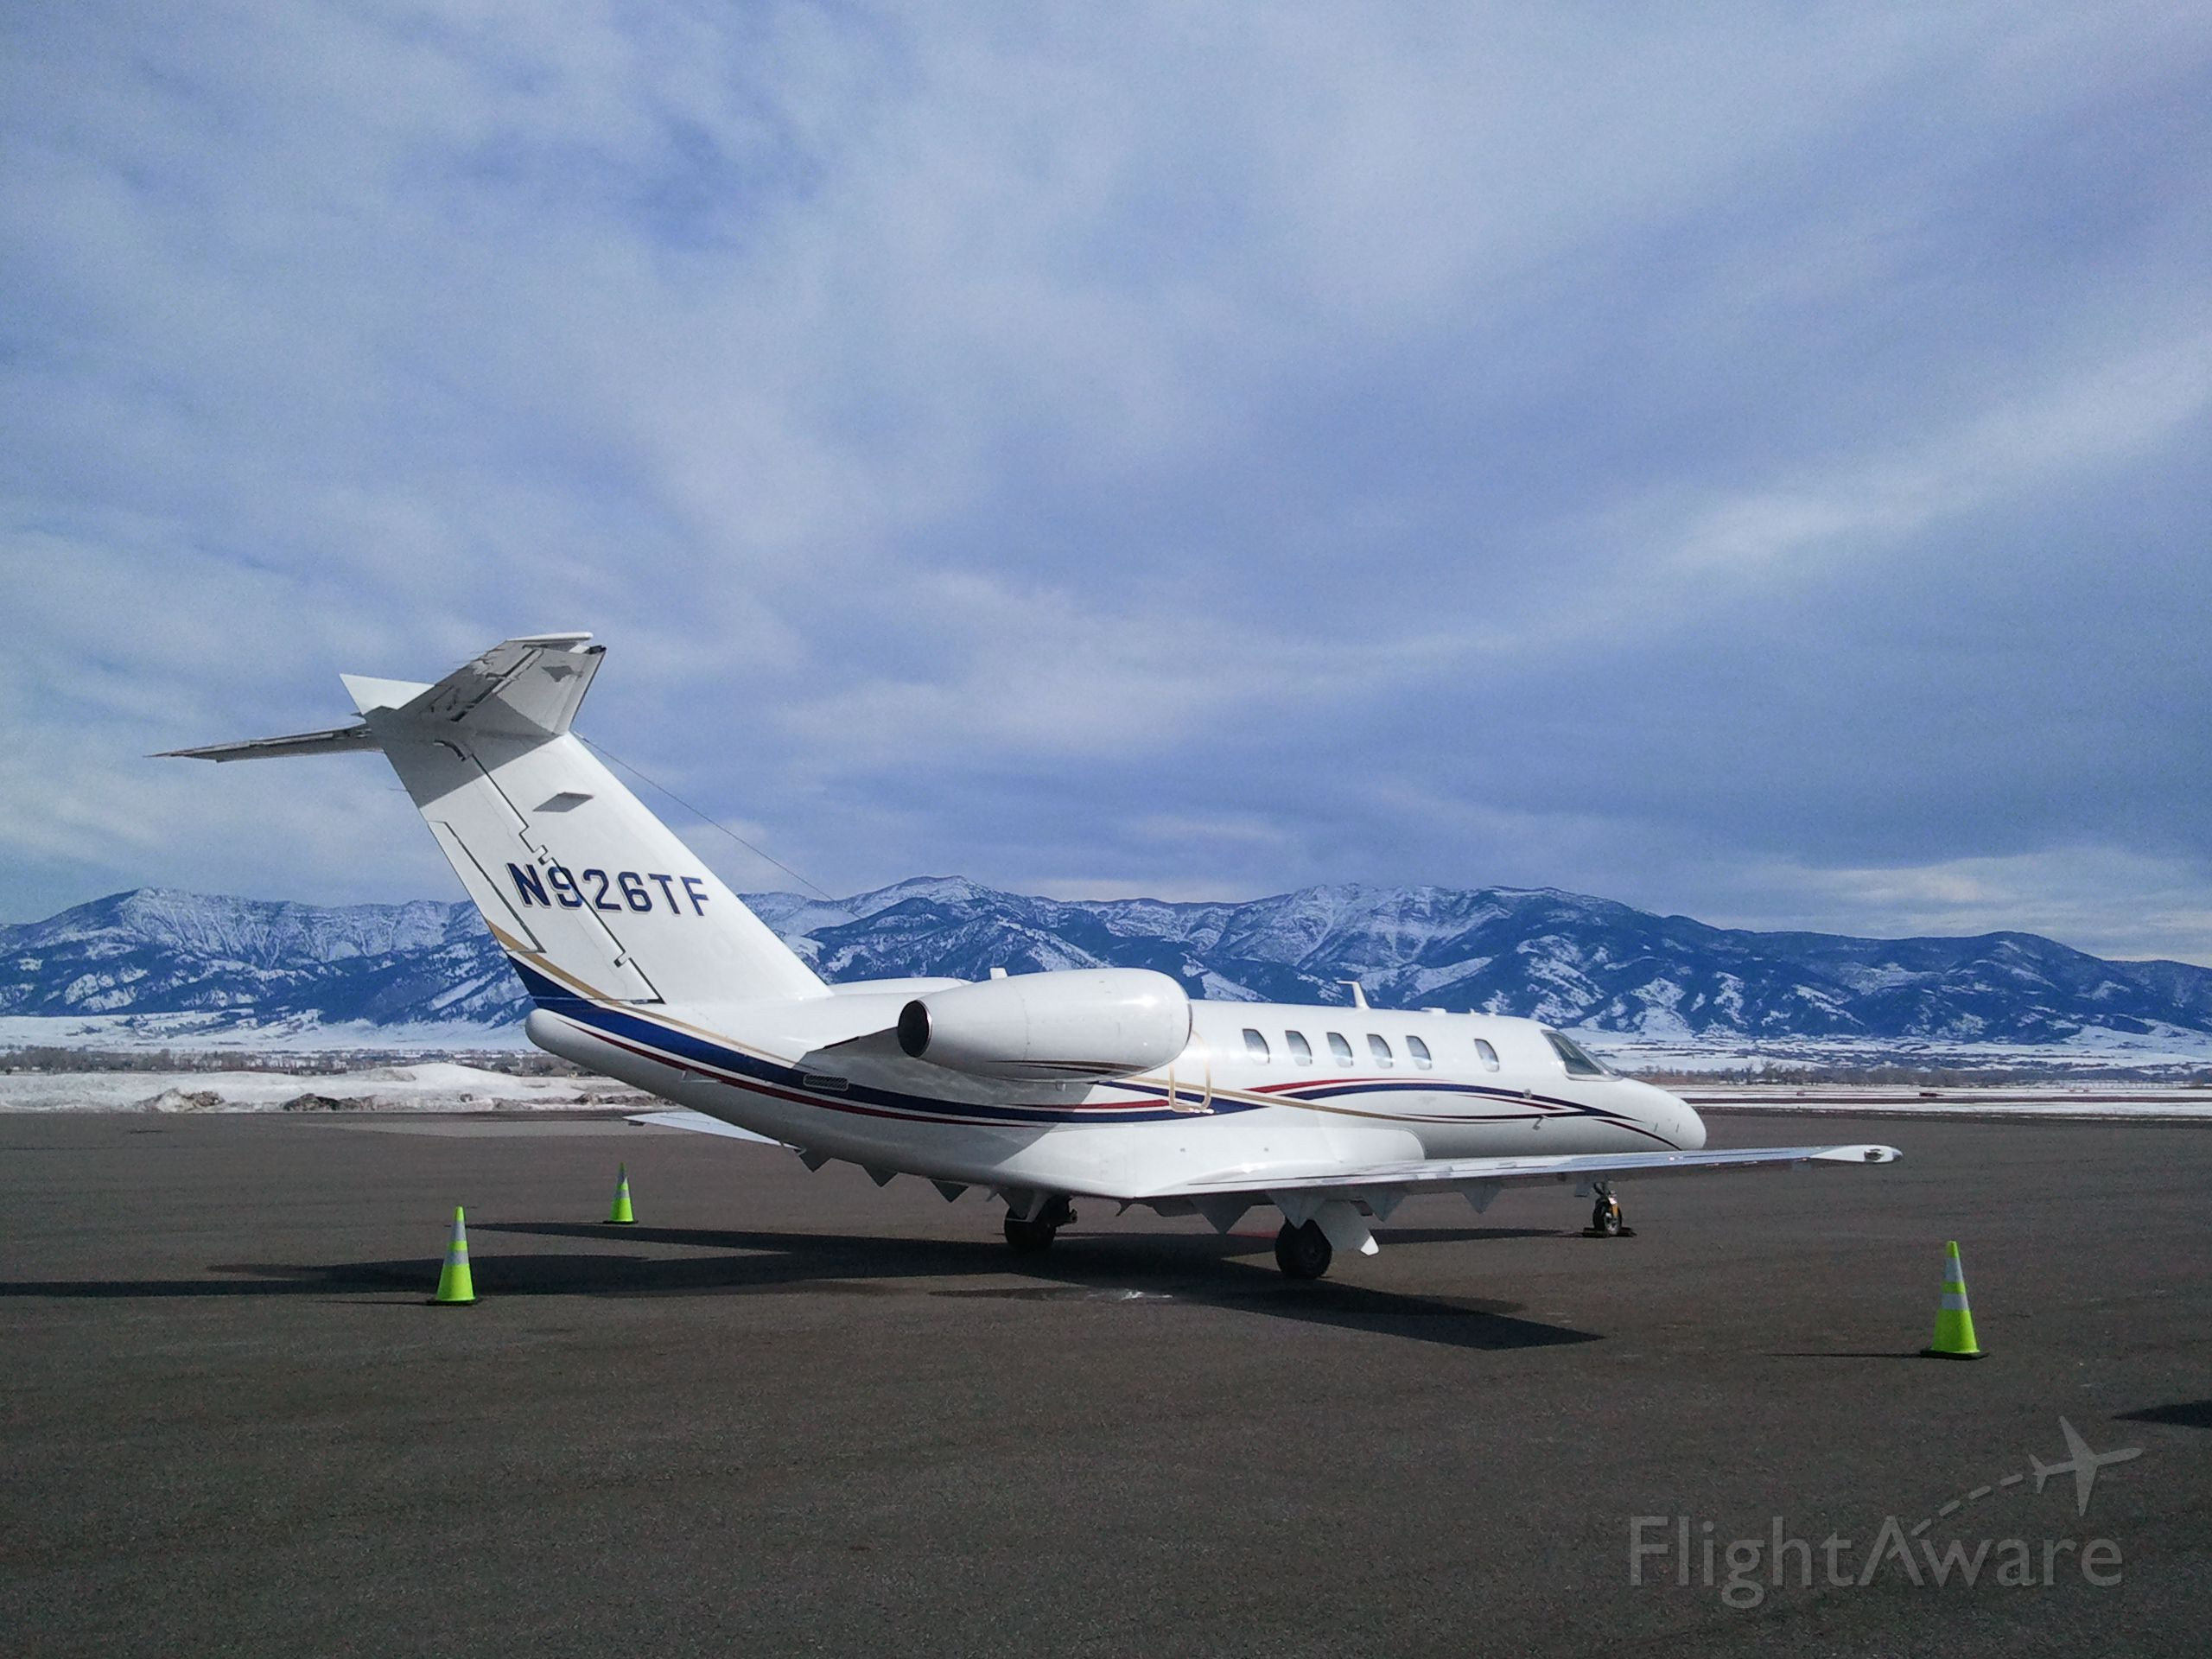 Cessna Citation CJ4 (N926TF) - This is actually a CJ4 but I am unable to change the designation.  N926TF has been adorned to a CJ and CJ1 previously.